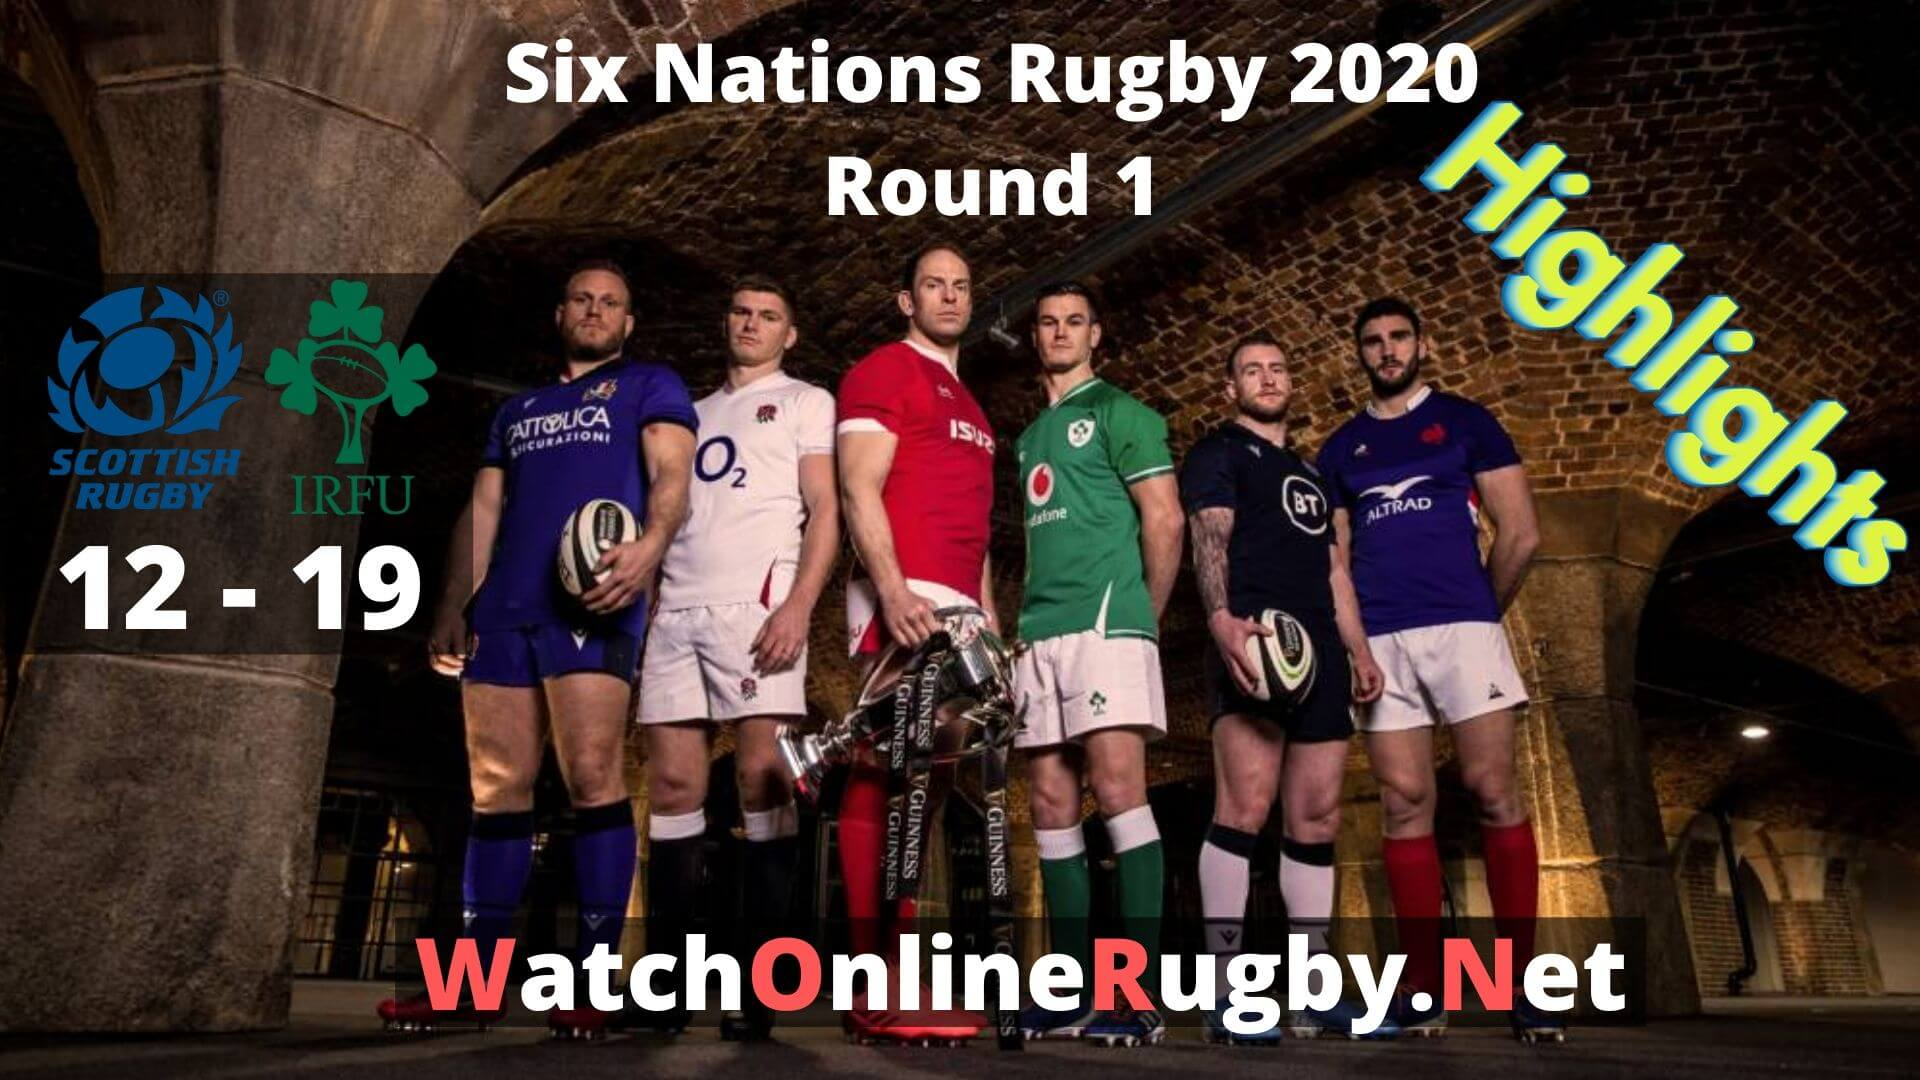 Scotland Vs Ireland 6 Nations Rugby 2020 Highlights Full Match Replay